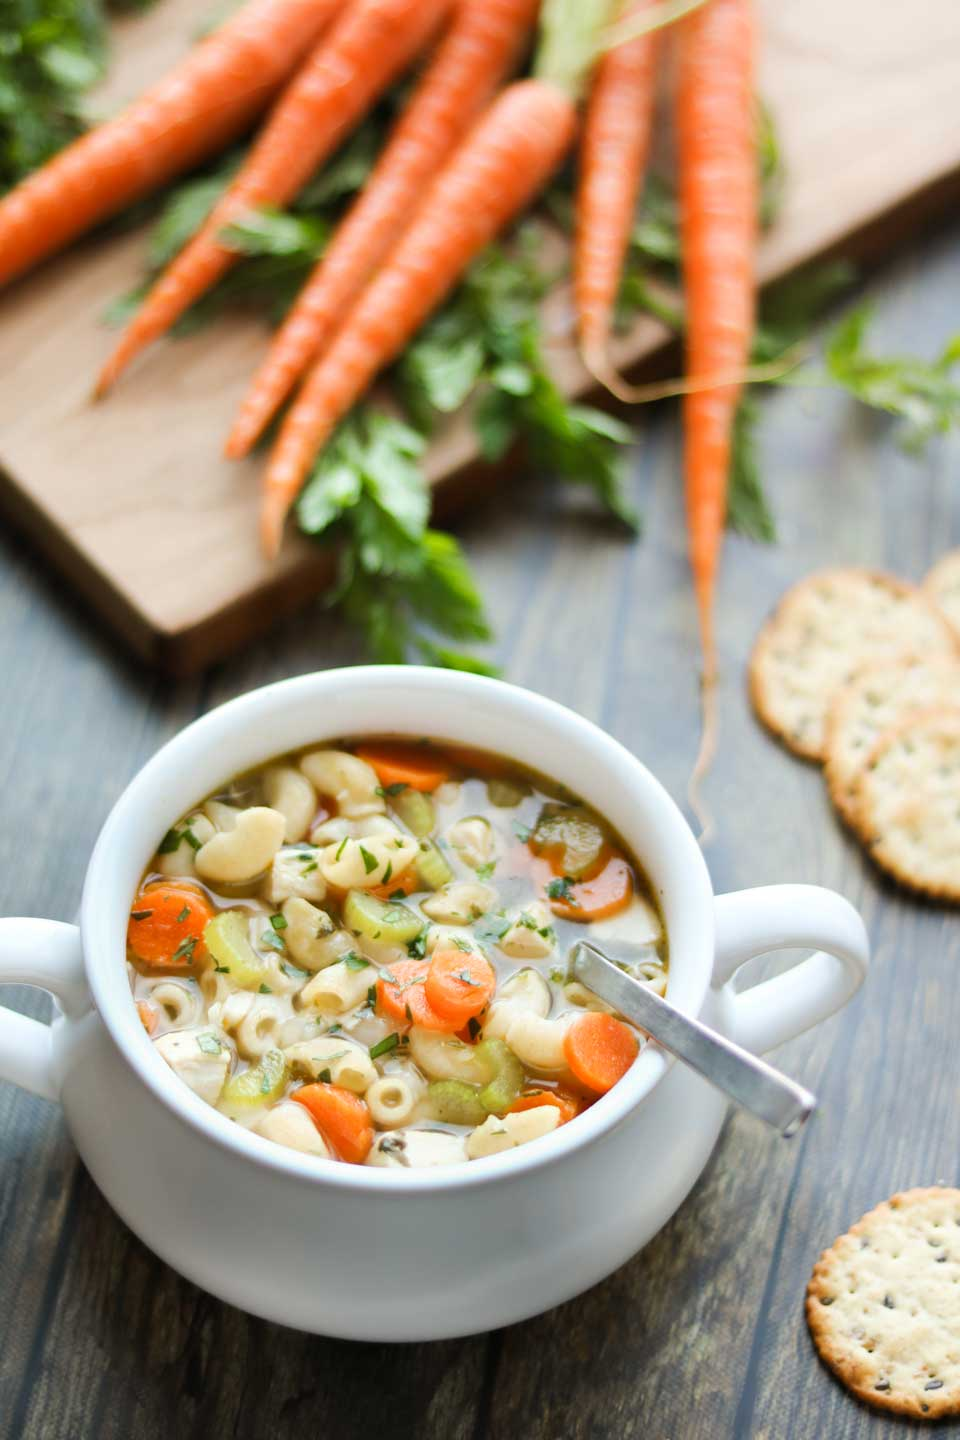 One bowl filled with this soup recipe, with a spoon dipped into it and crackers and pretty, raw carrots in the background.